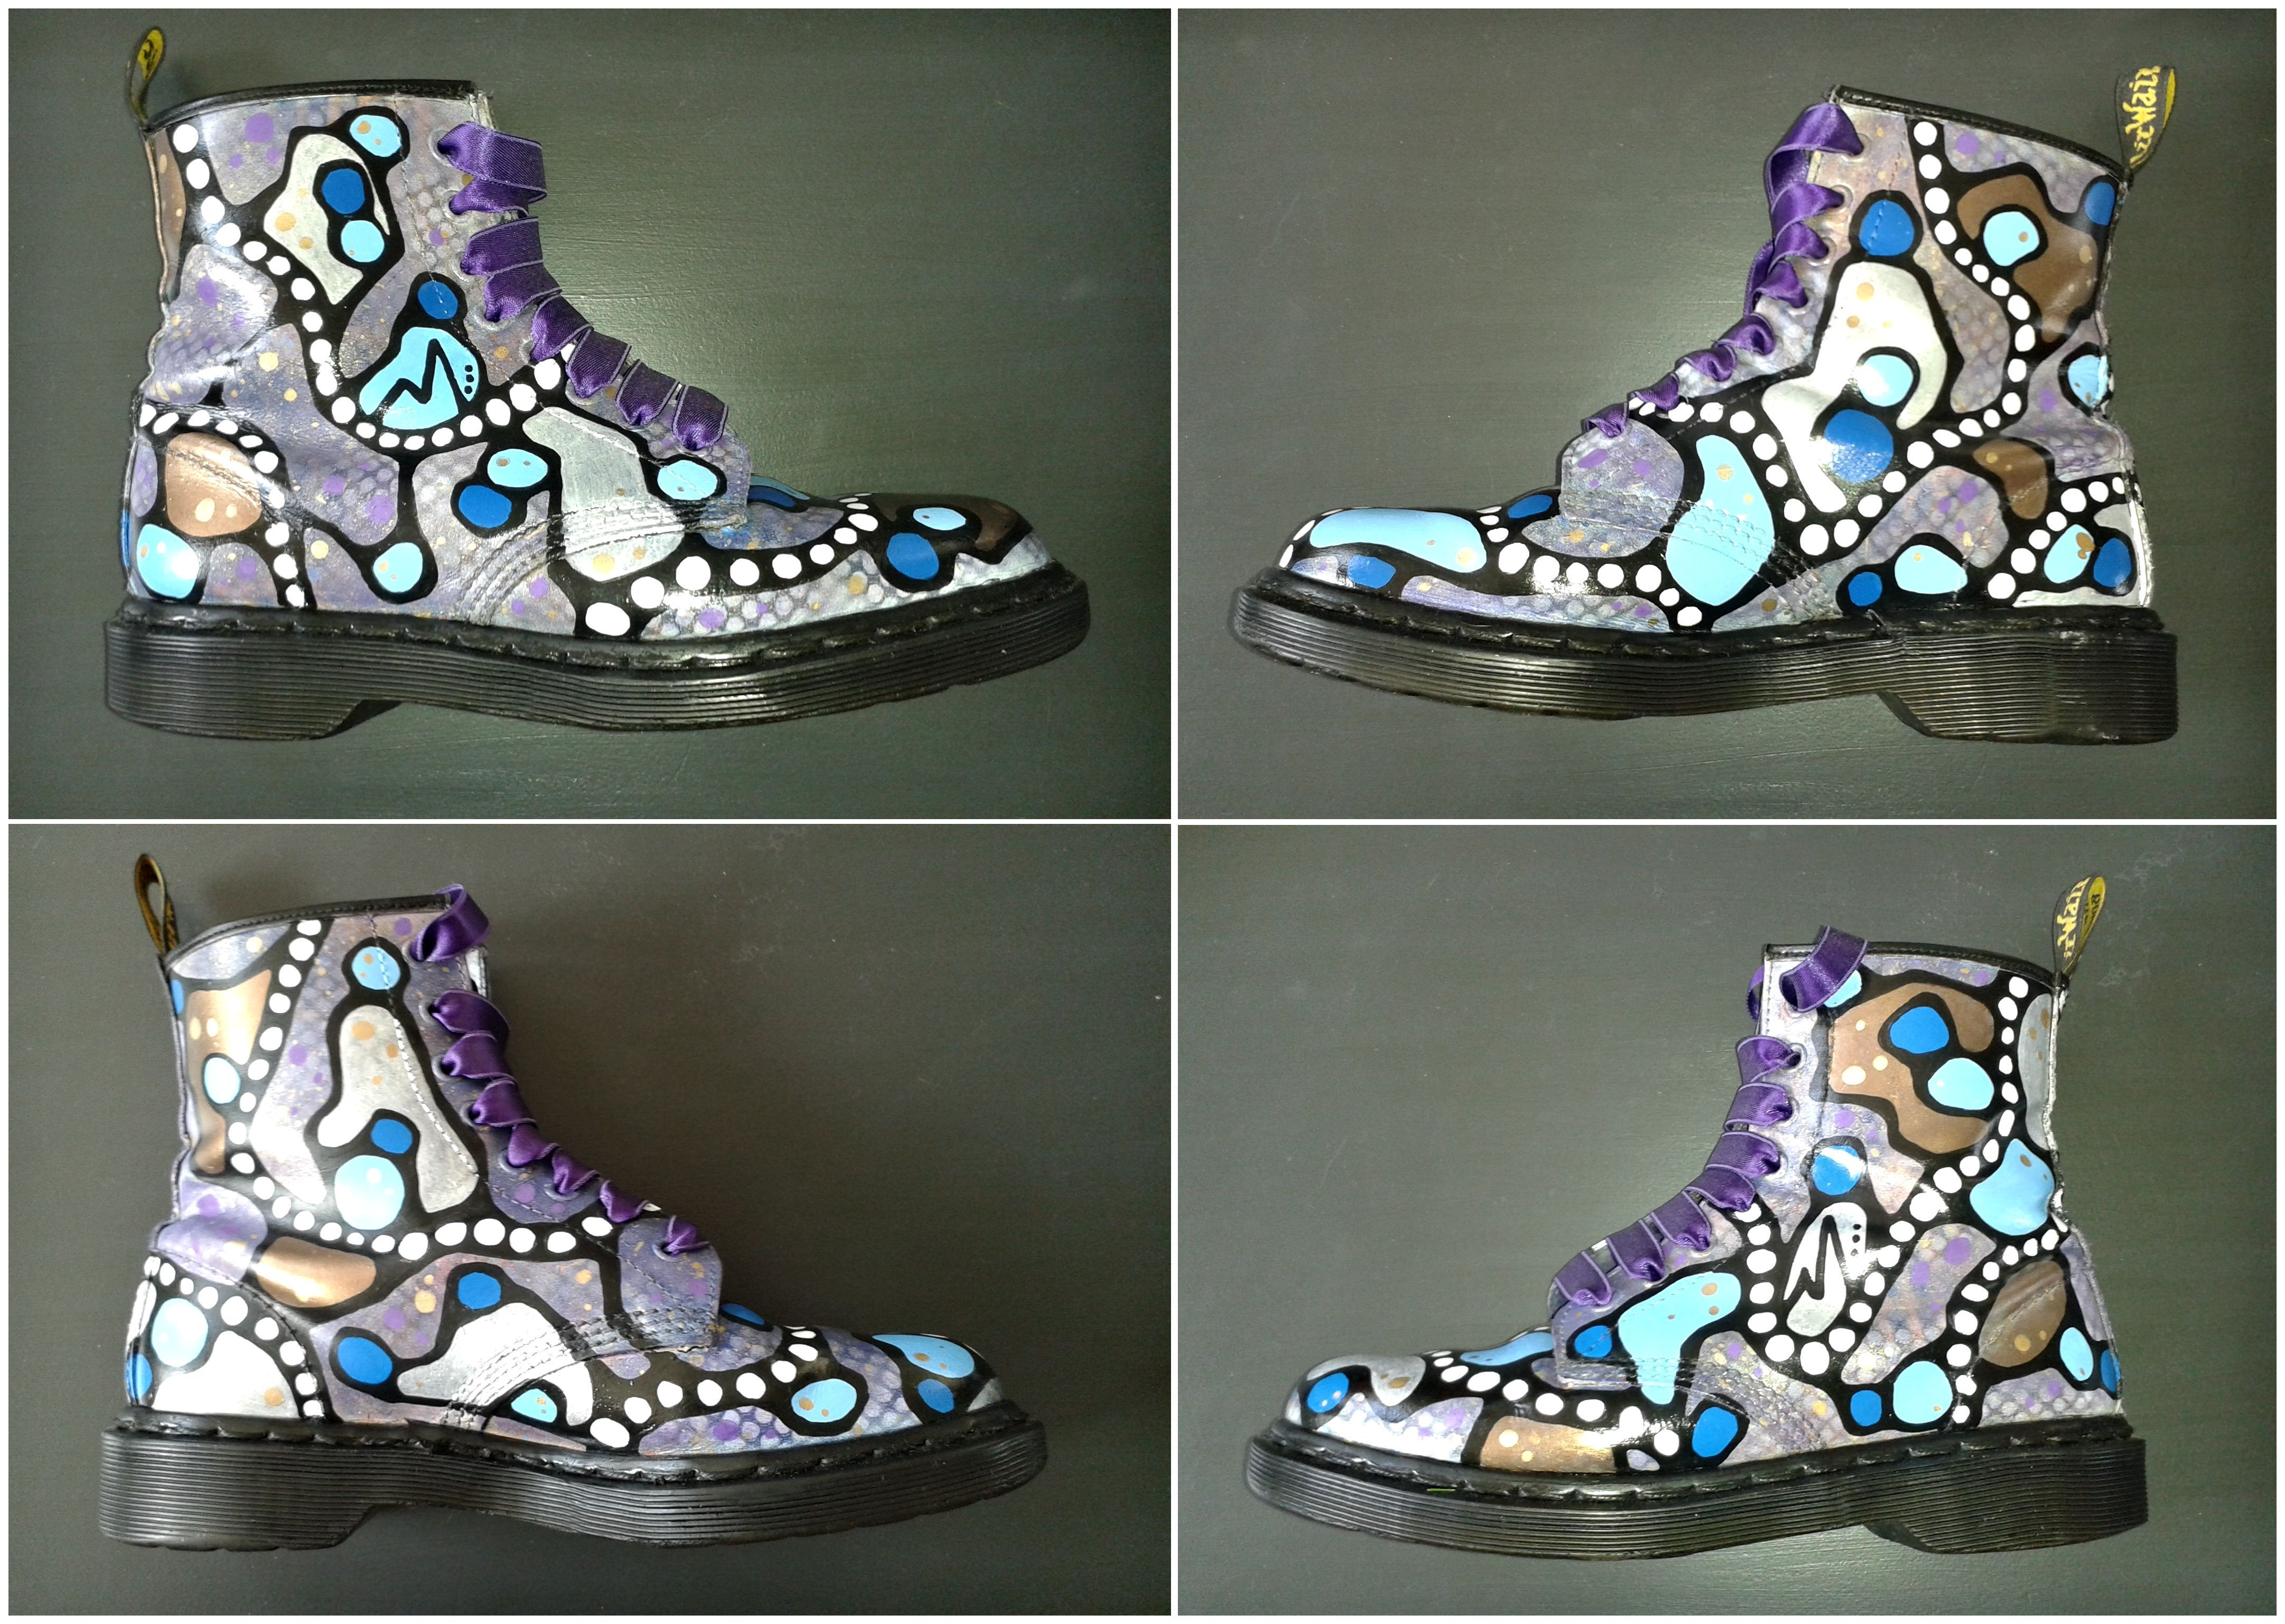 206784fc365 My latest project: Custom painted Dr. martens boots > Third pair. I ...